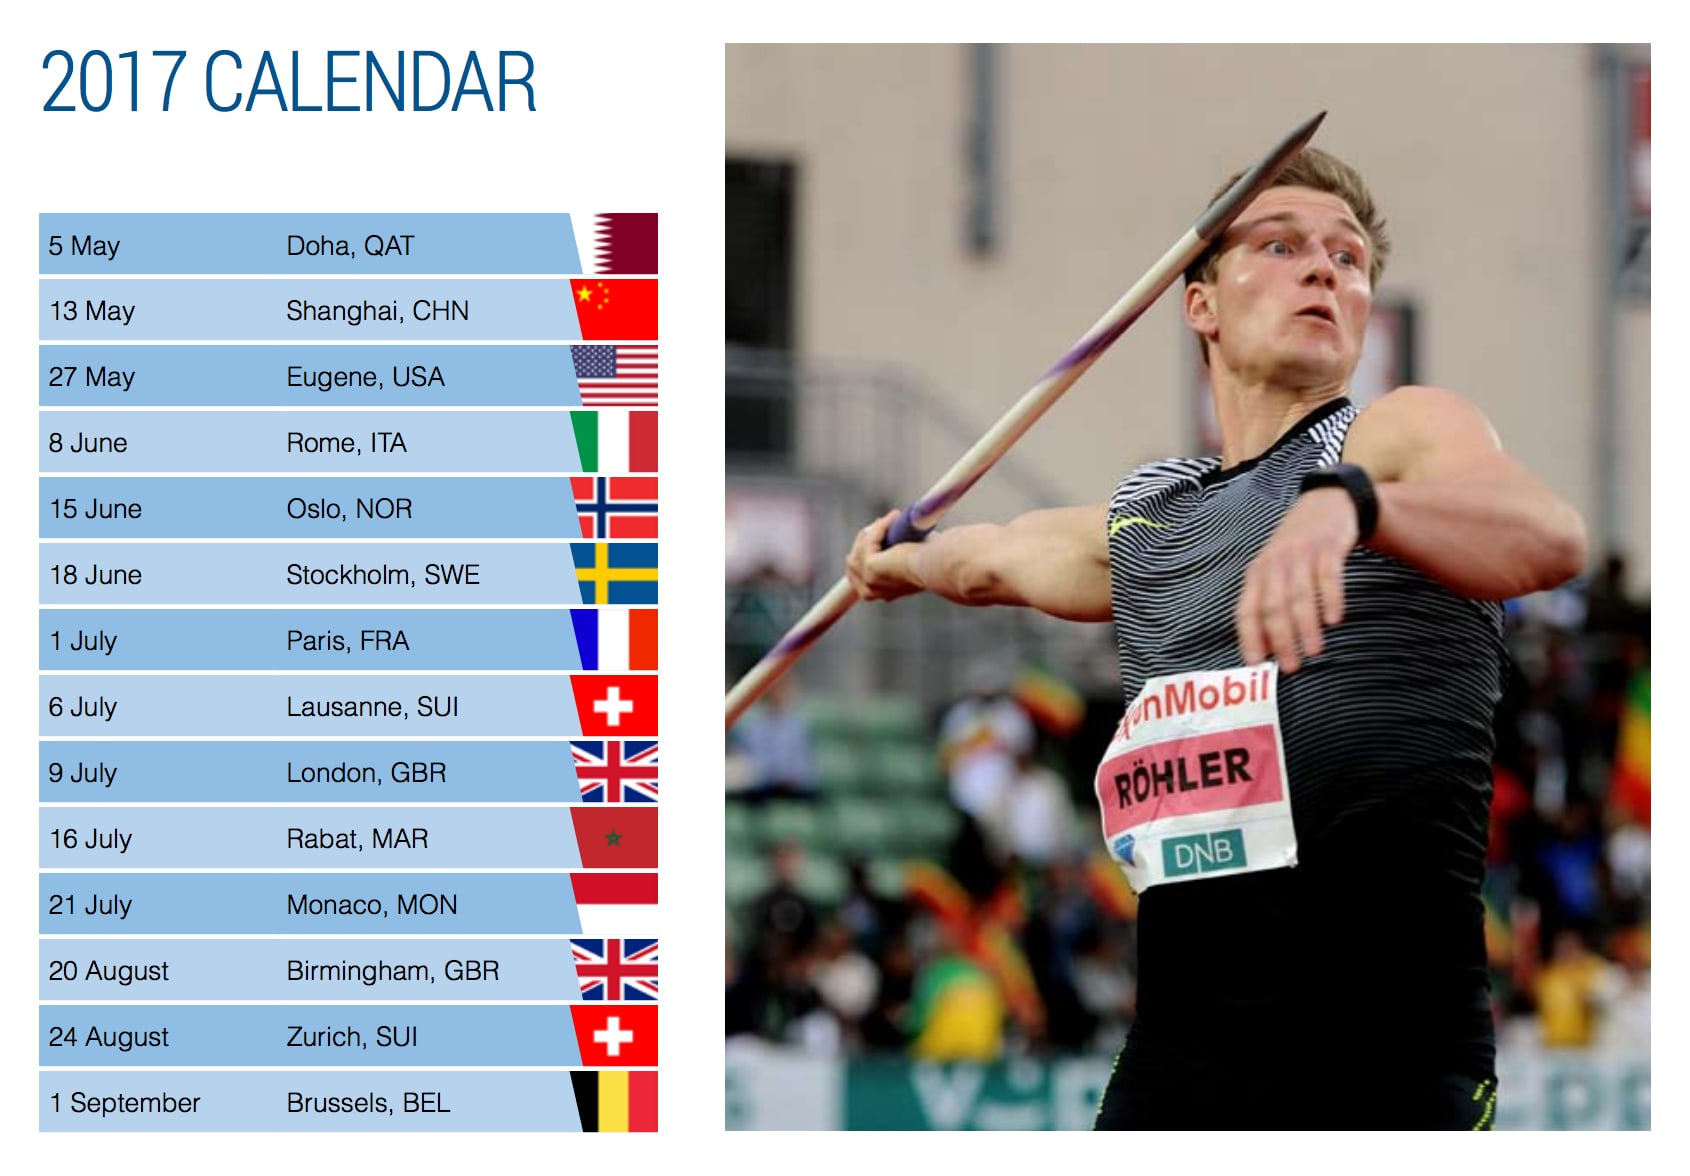 Diamond League Calendar 2017